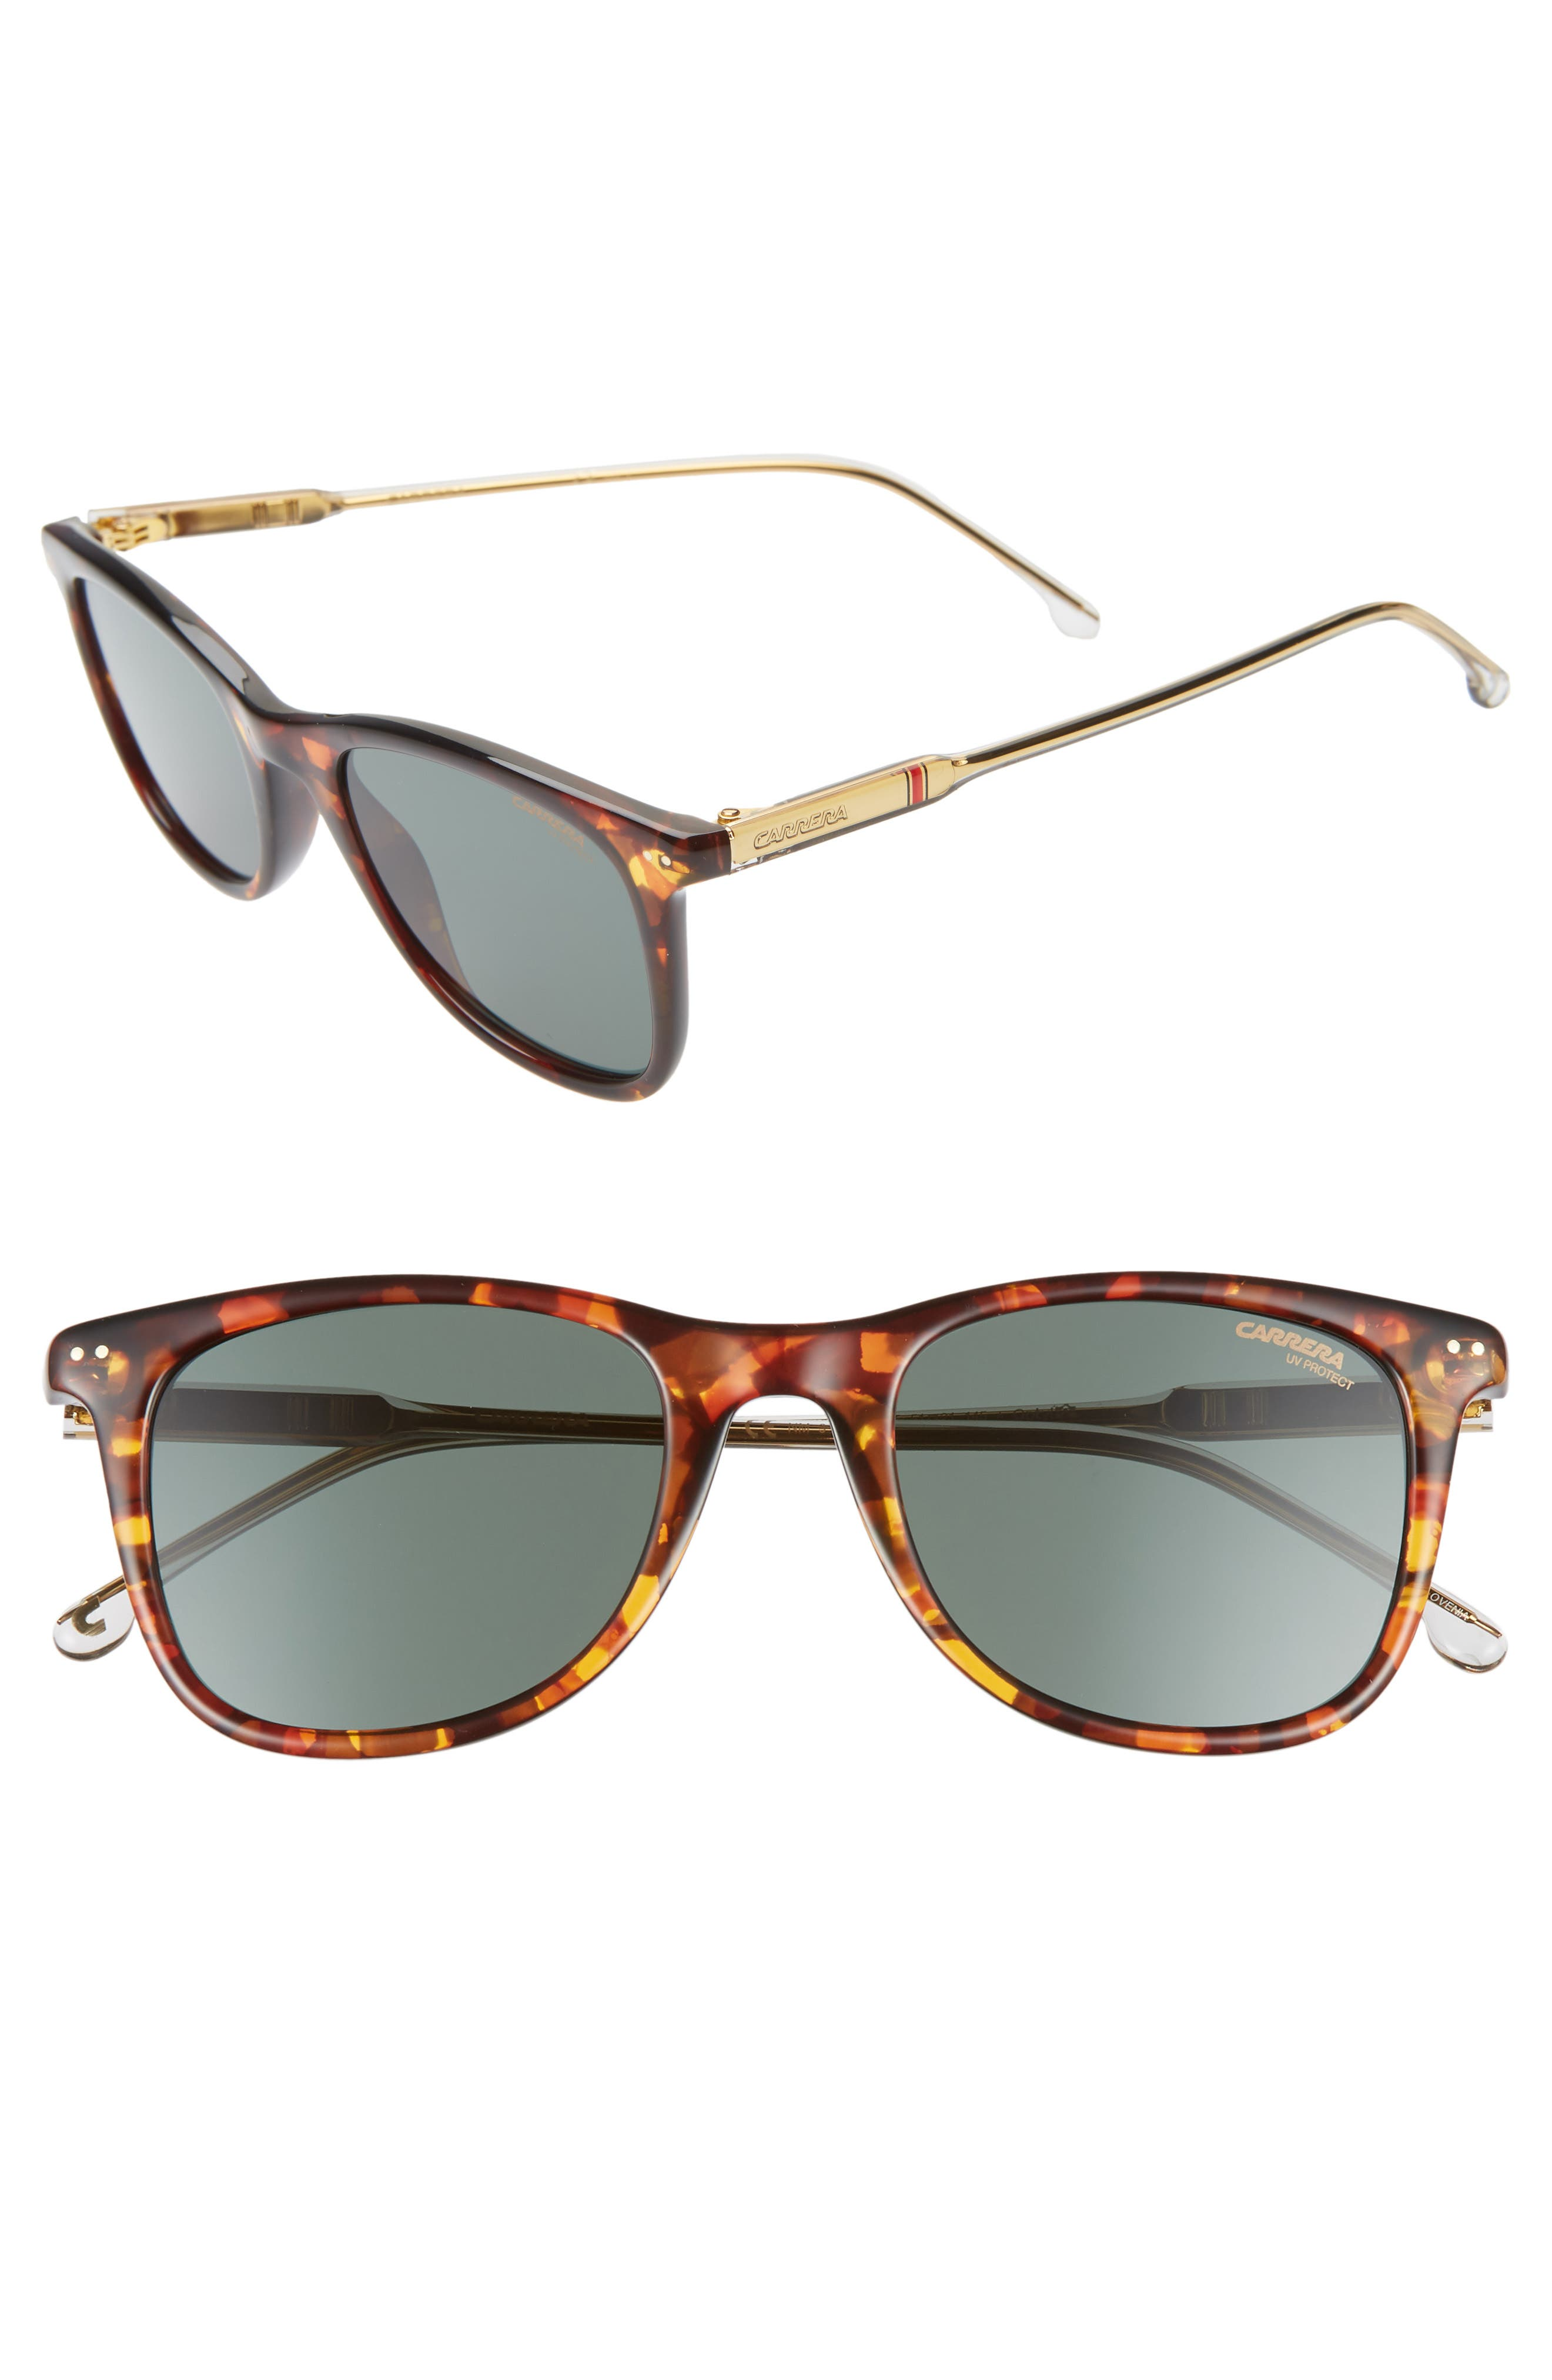 Carrera Eyewear 51Mm Sunglasses - Dark Havana